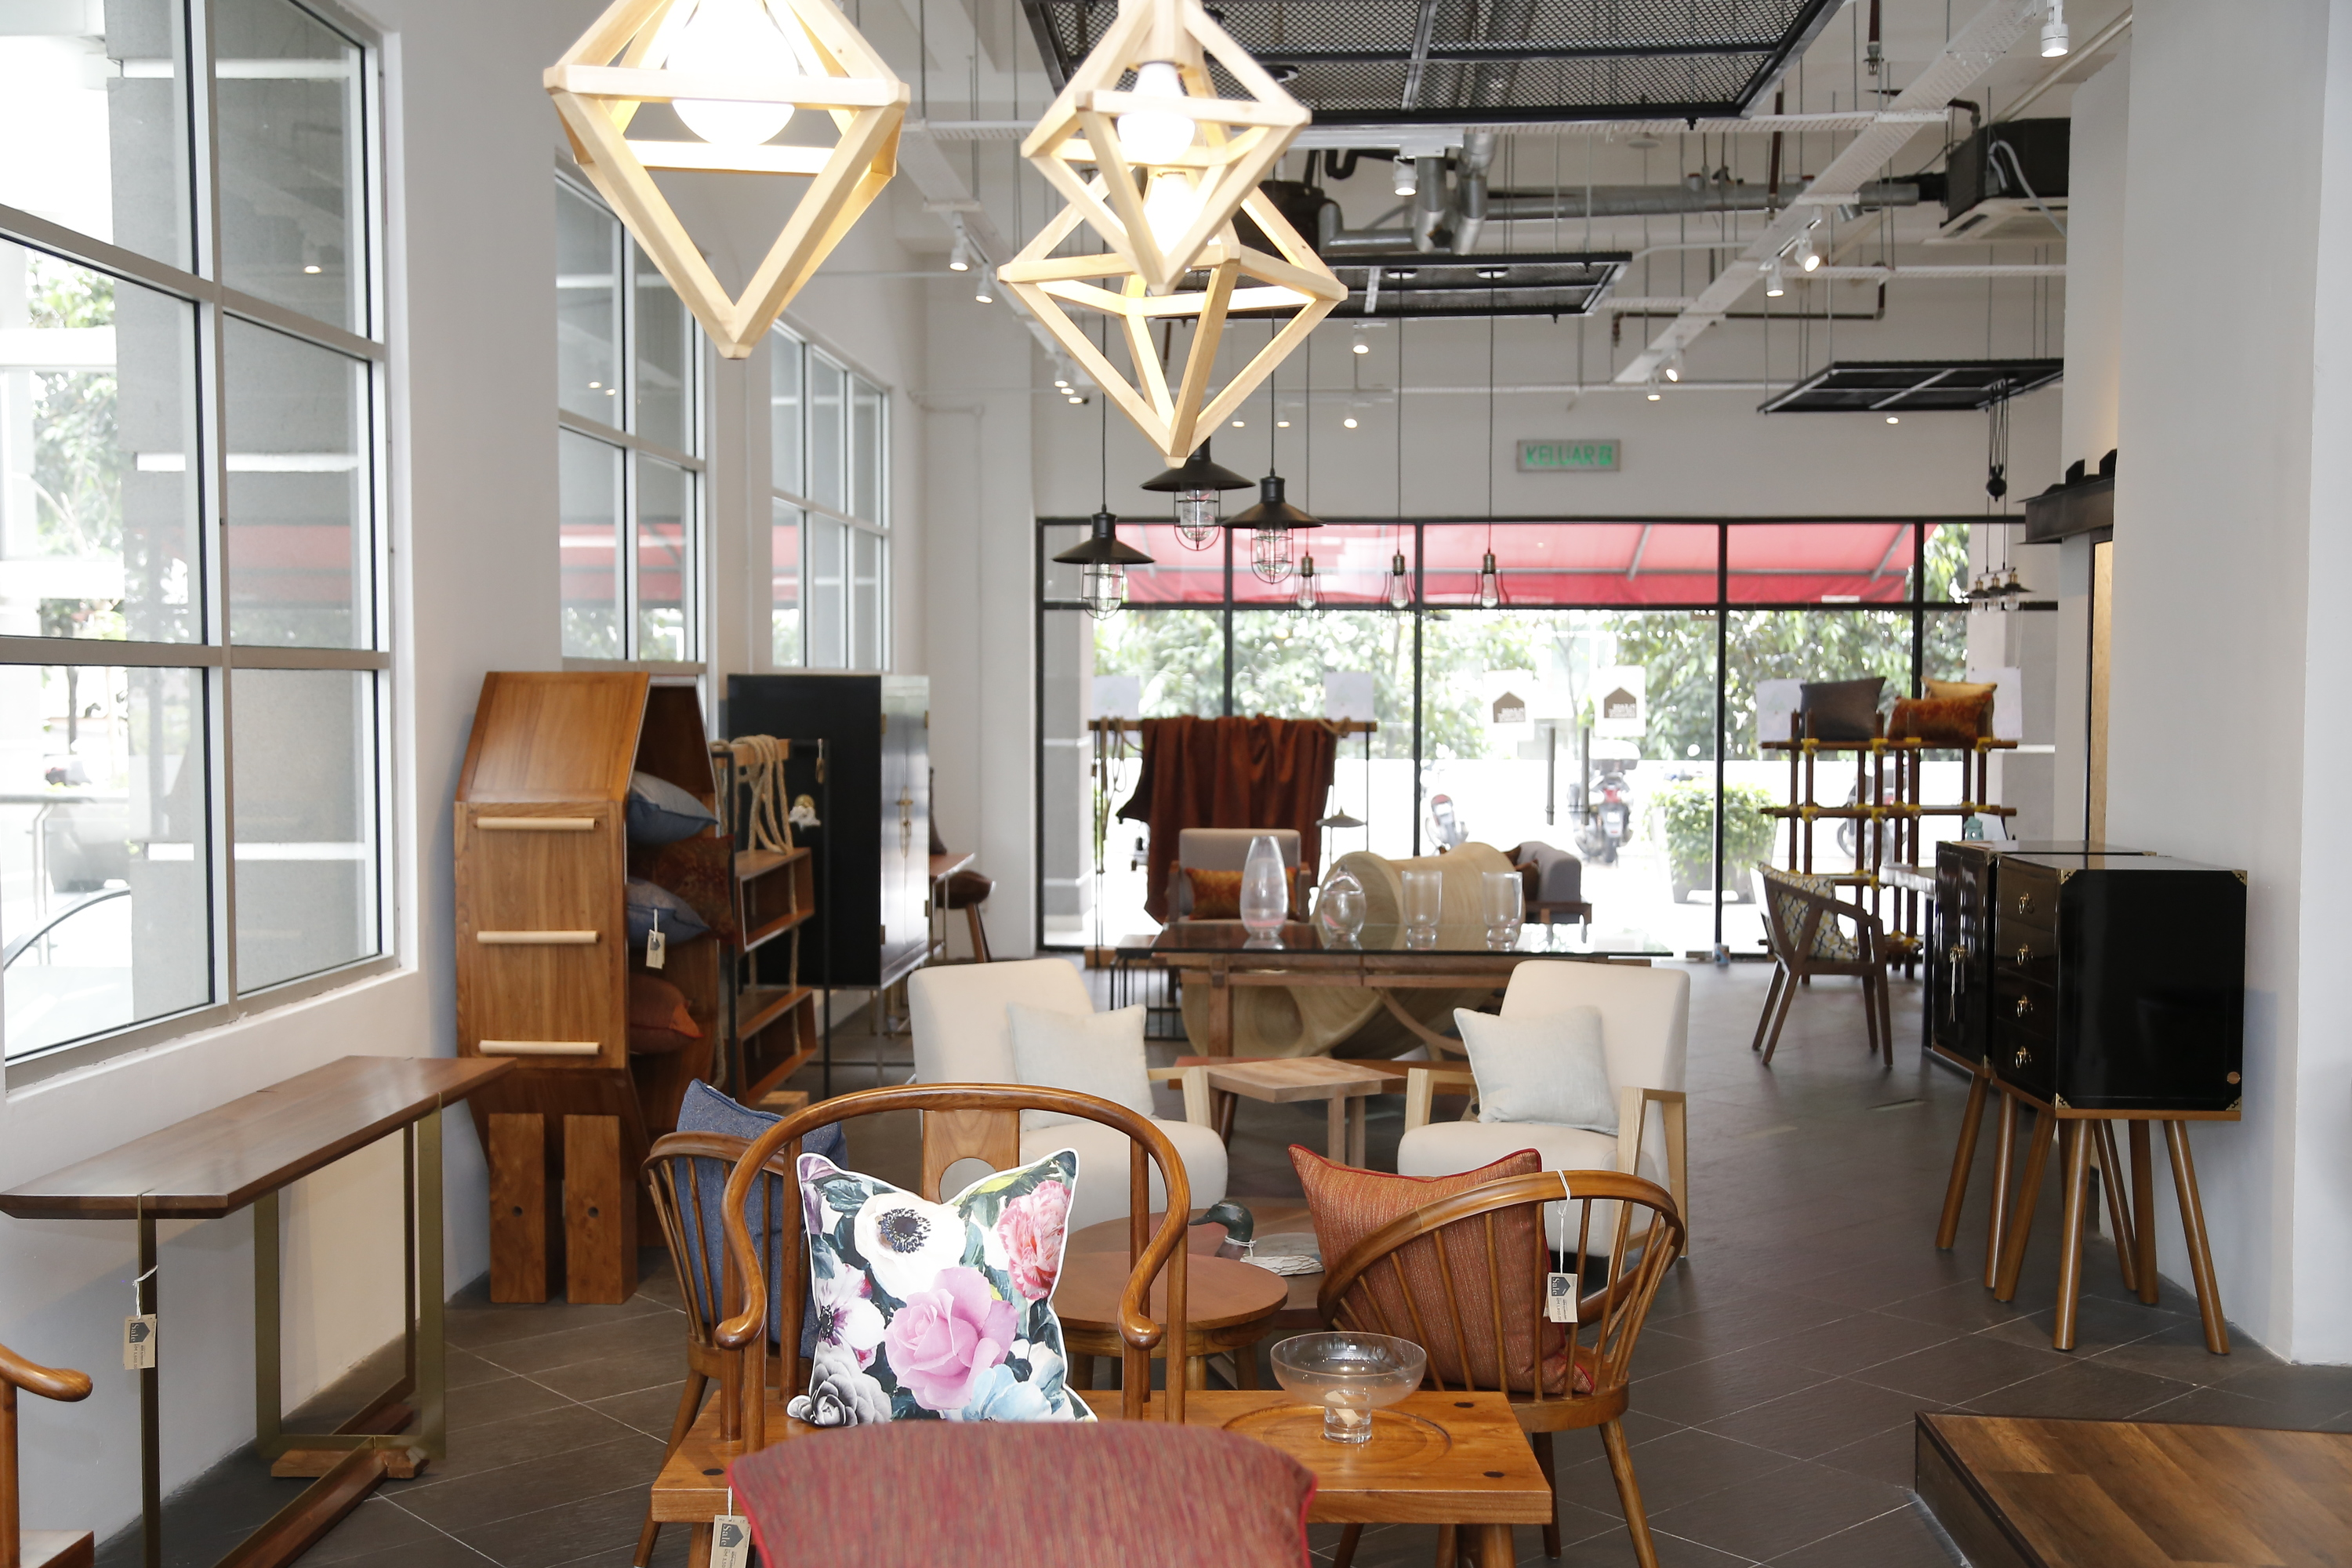 The best furniture and home decor stores in kl for Home decor retailers